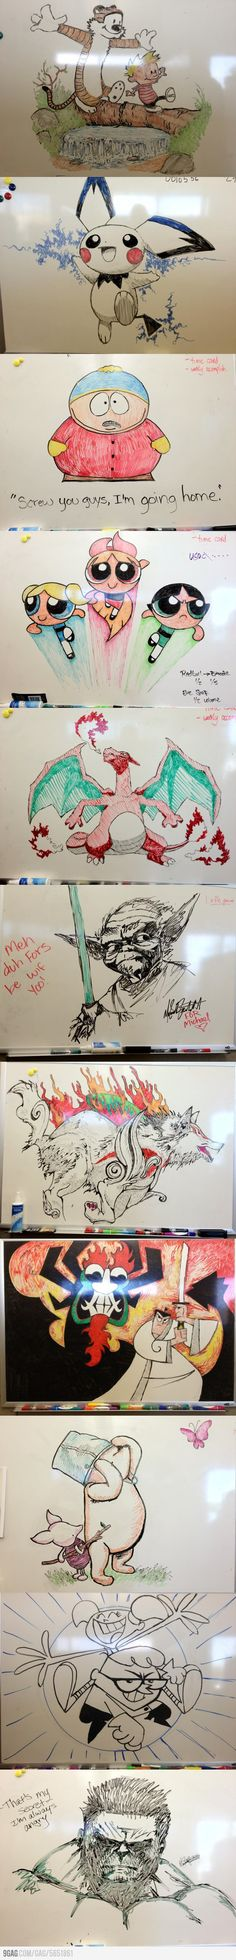 Awesome Whiteboard Drawing, fourth one up, i completely forgot about him.